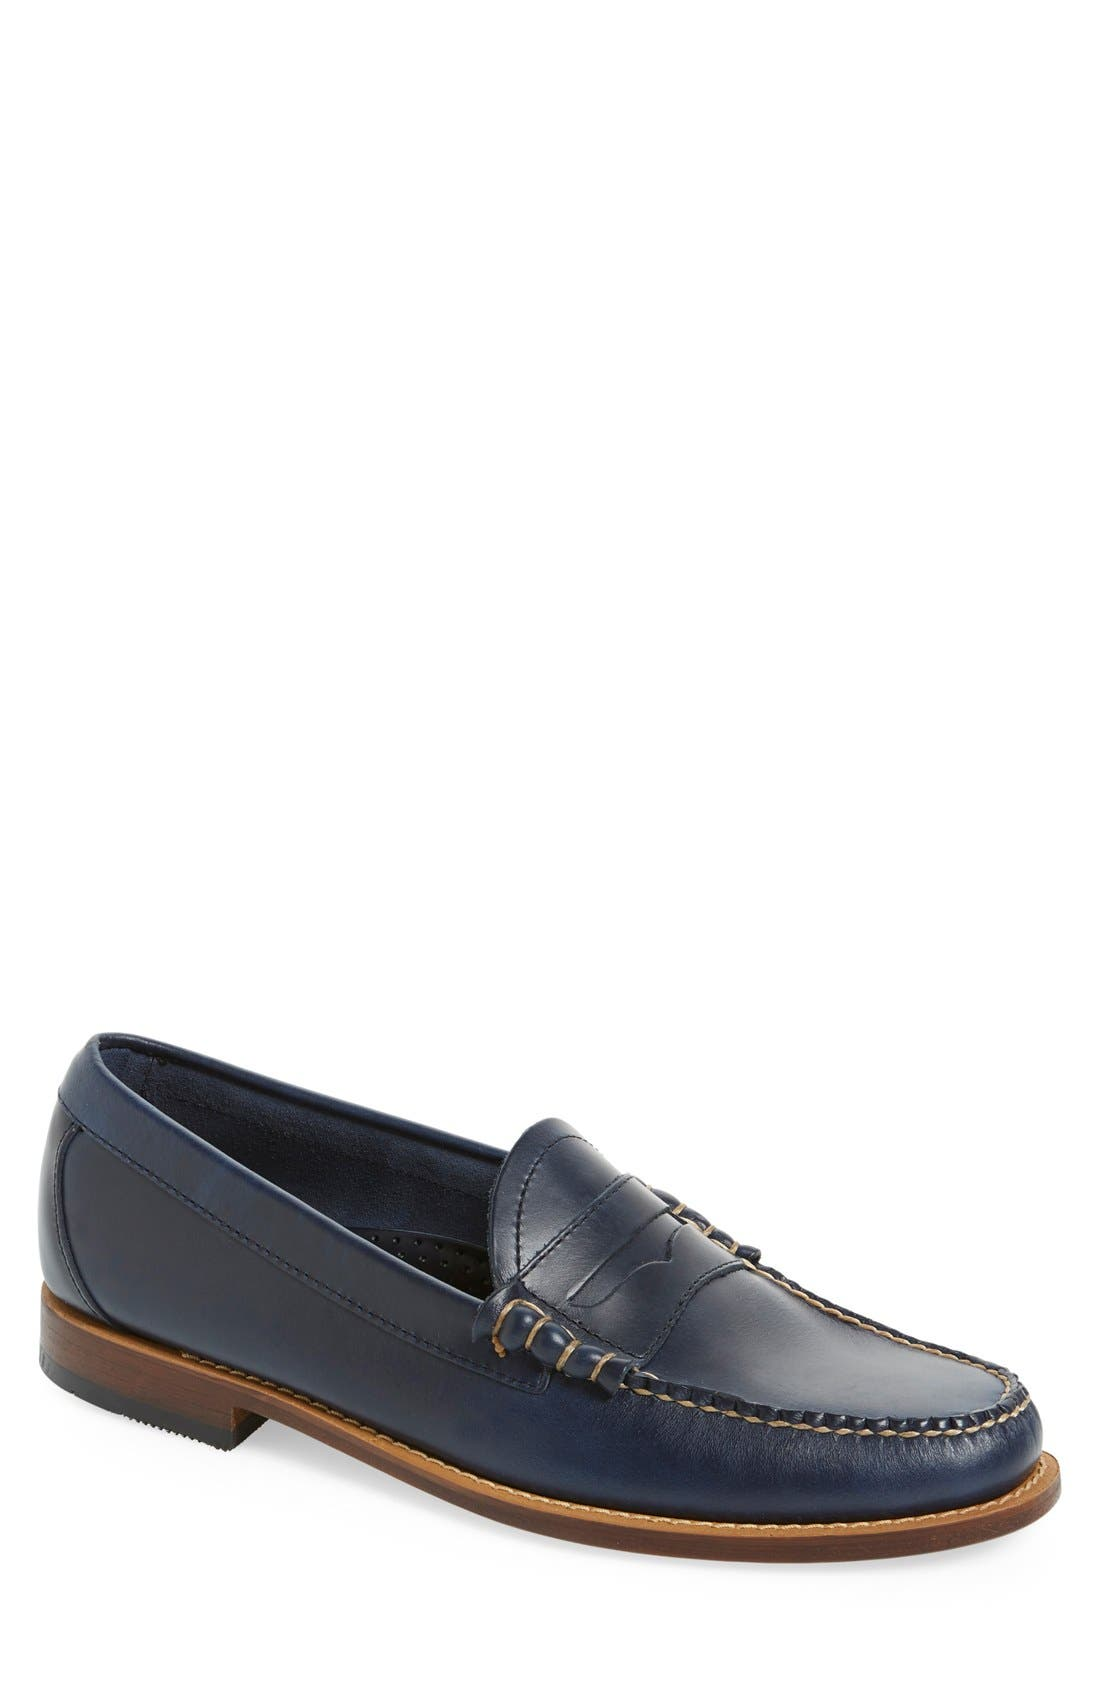 'Larson - Weejuns' Penny Loafer,                         Main,                         color, BLUE LEATHER